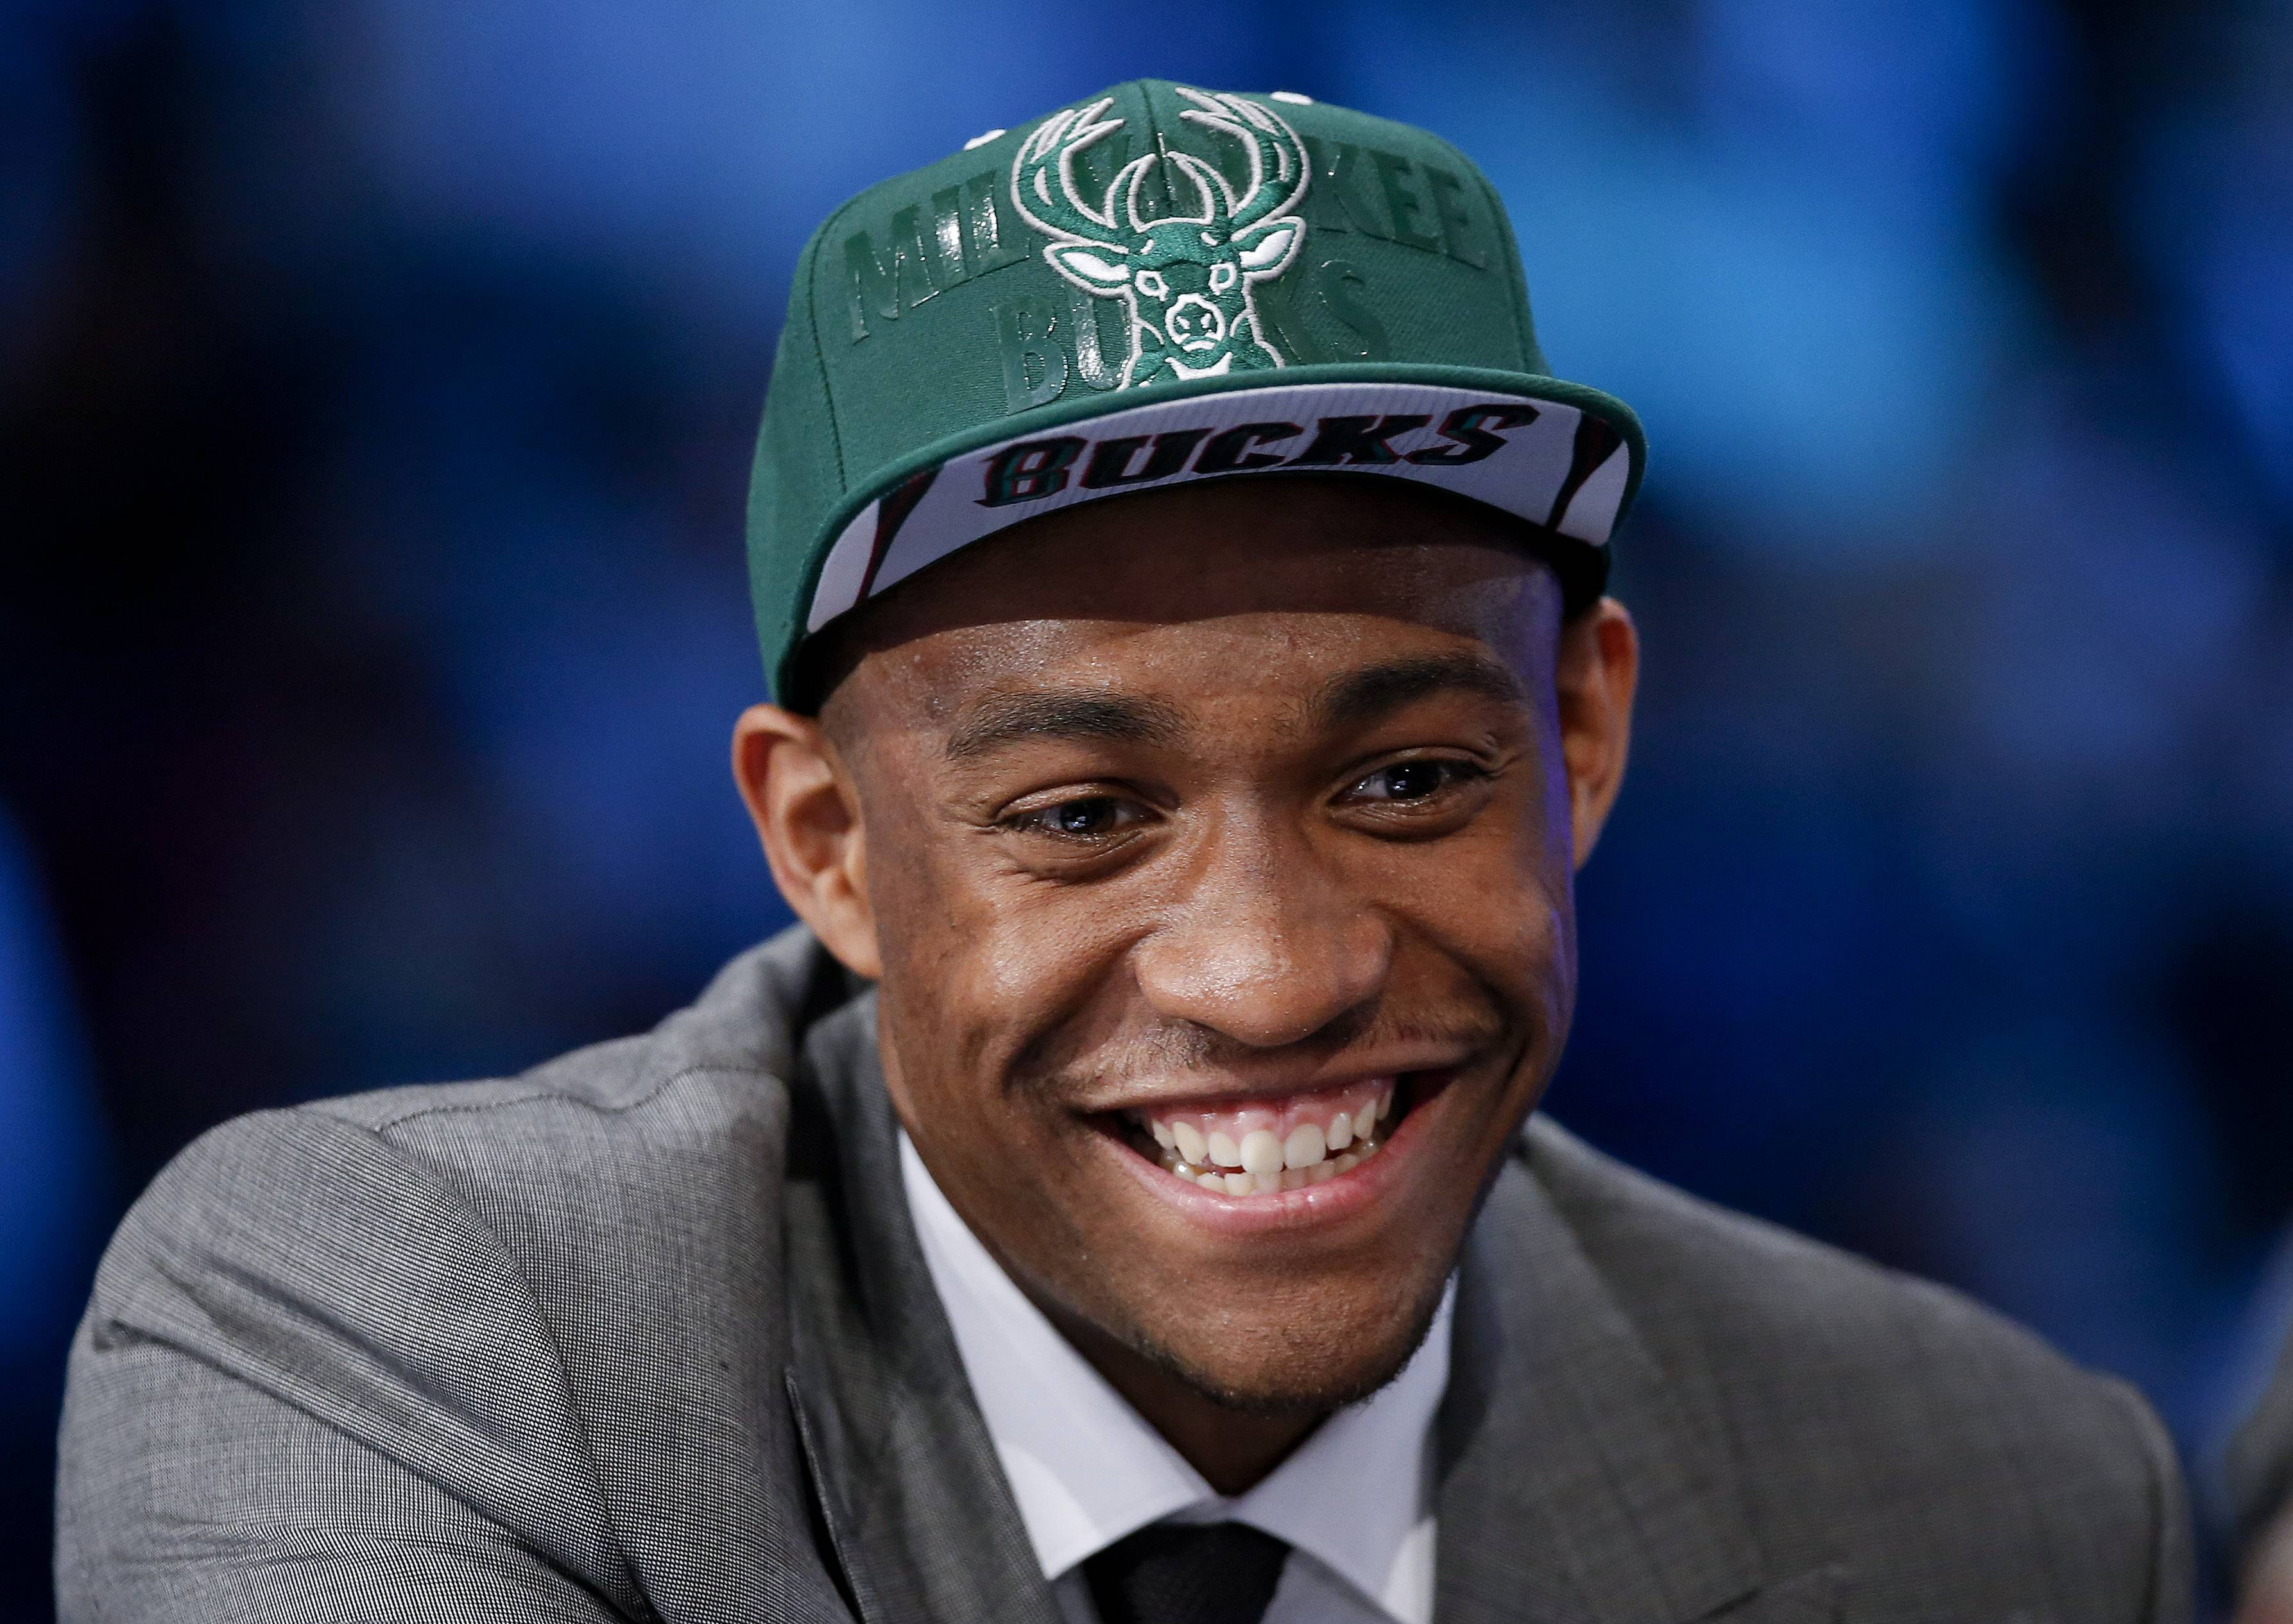 Jabari Parker of Duke answers questions during an interview after being selected by the Milwaukee Bucks as the number two overall pick during the 2014 NBA draft, Thursday, June 26, 2014, in New York.